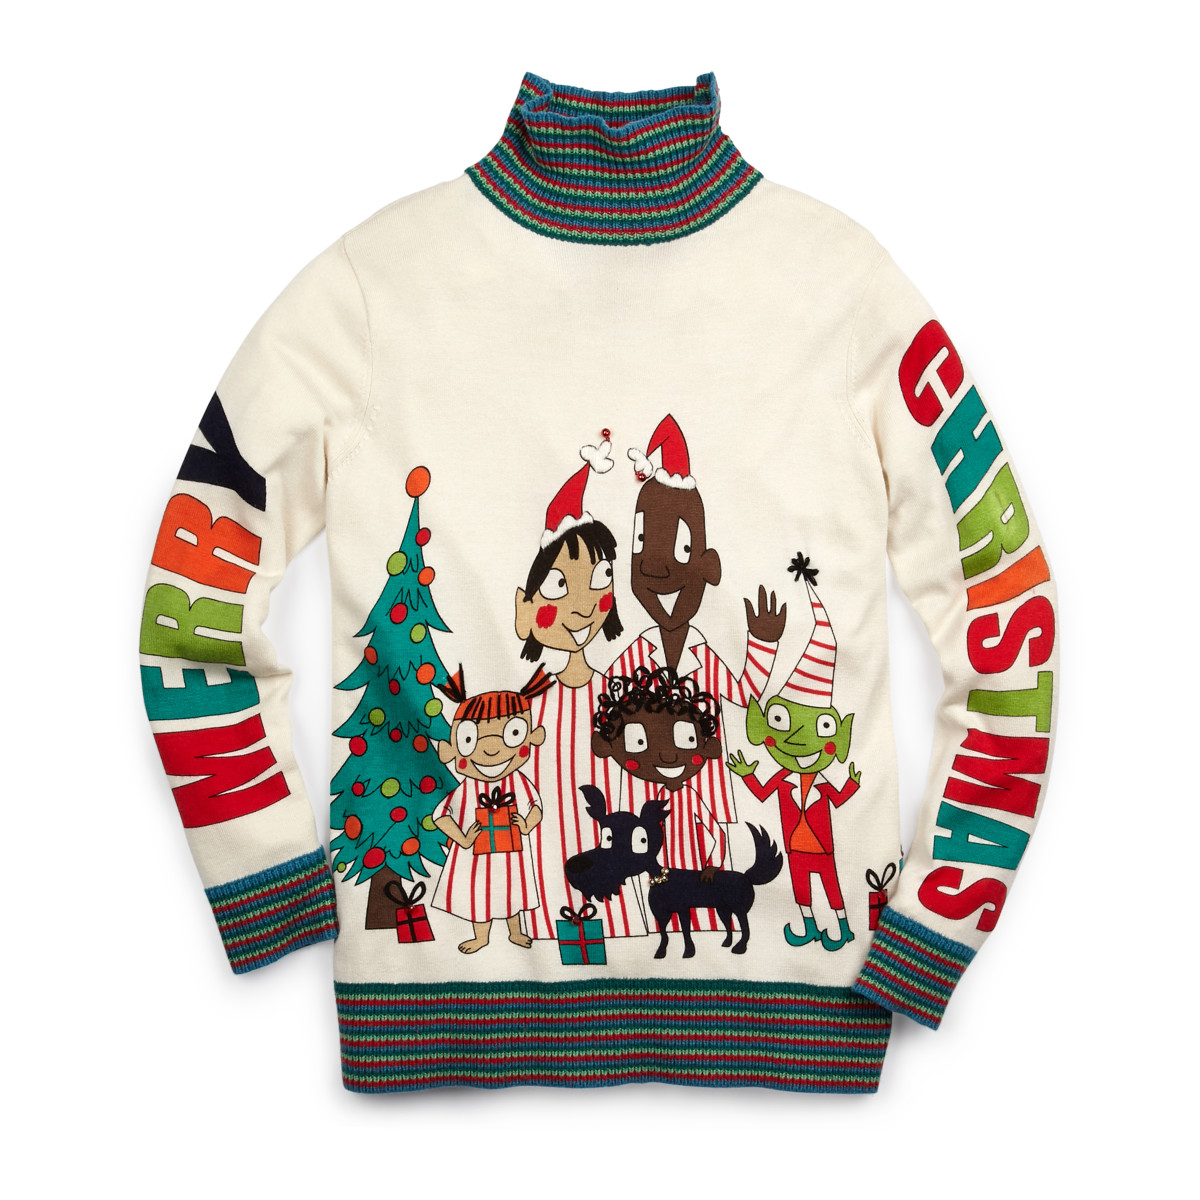 Whoopi Goldberg's All Together Now sweater, $139. Photo: Lord & Taylor